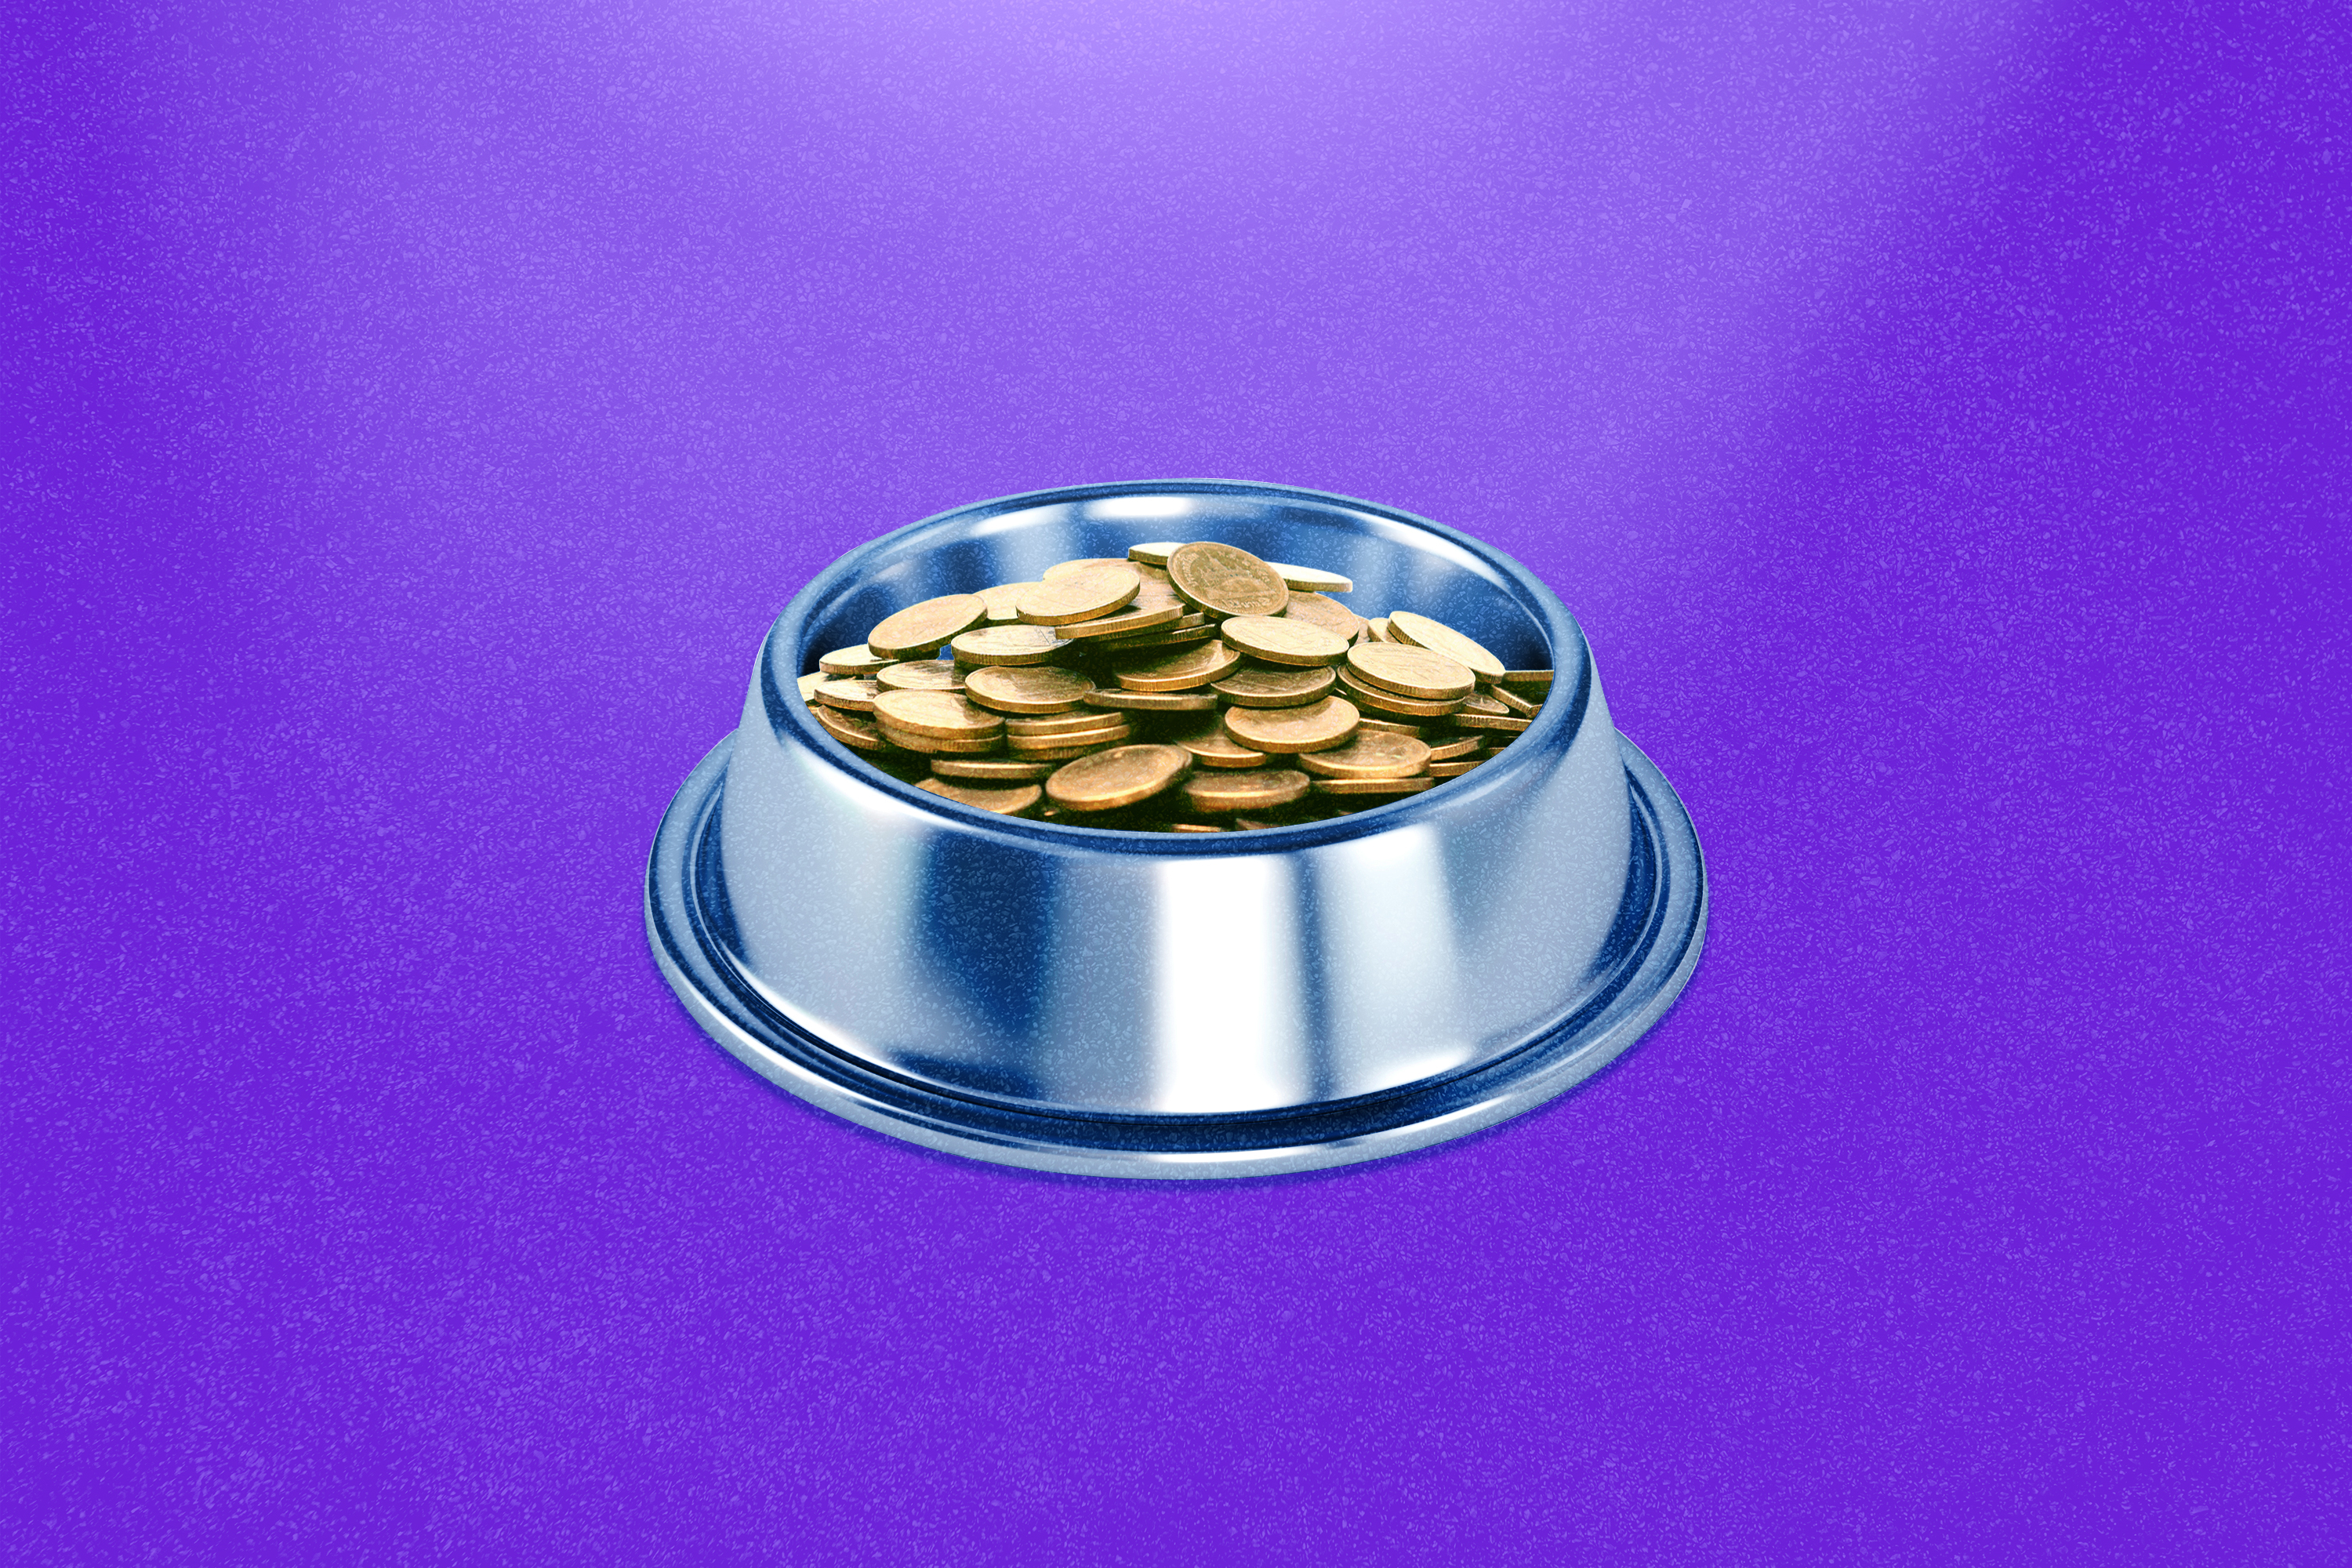 An illustration of a dog bowl with coins in it, a hint at Dogecoin. Dogecoin might reach $1. Or, it might leave investors with empty pockets.